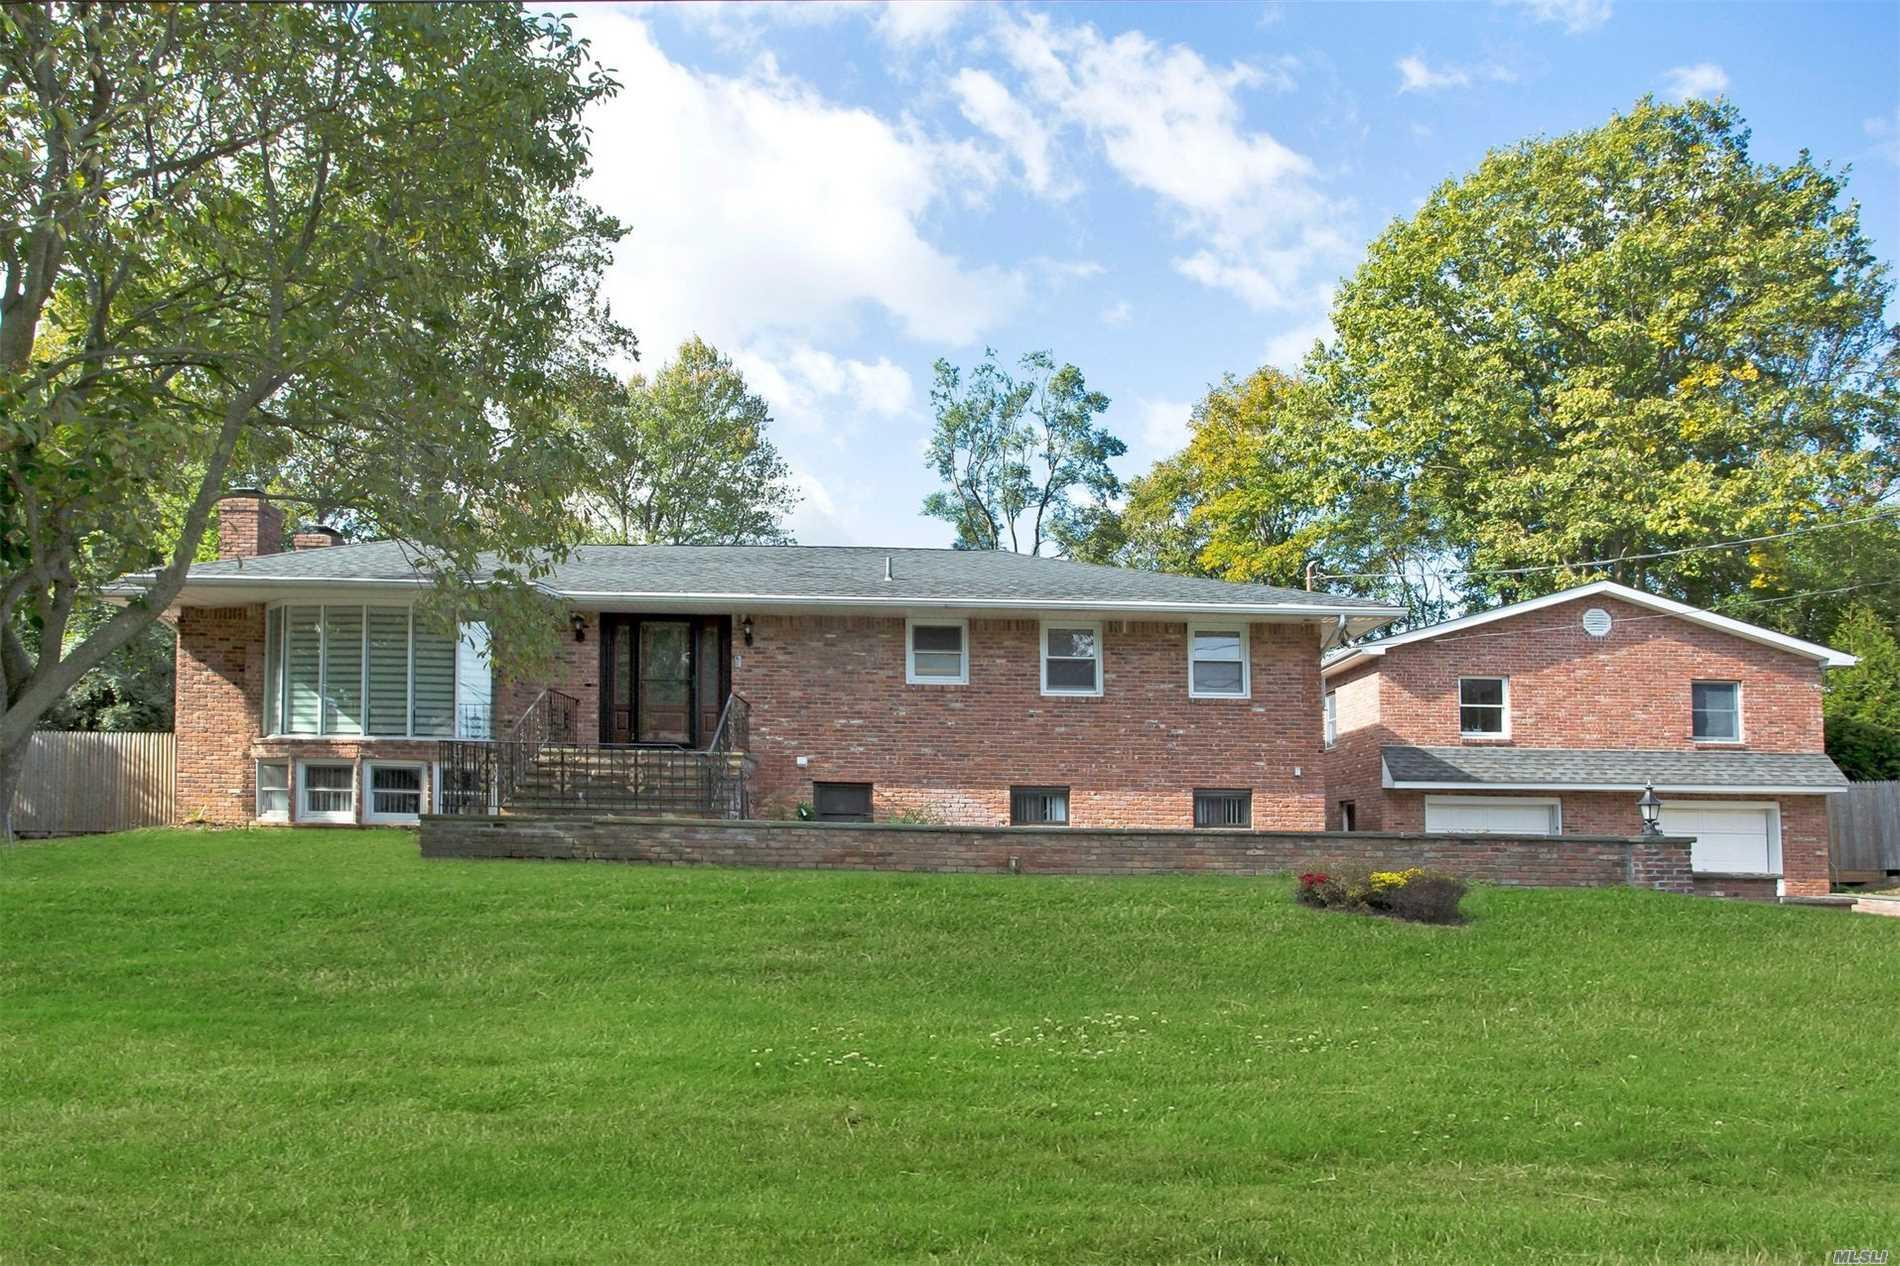 Photo of home for sale at 14 High Elms Ln, Glen Cove NY